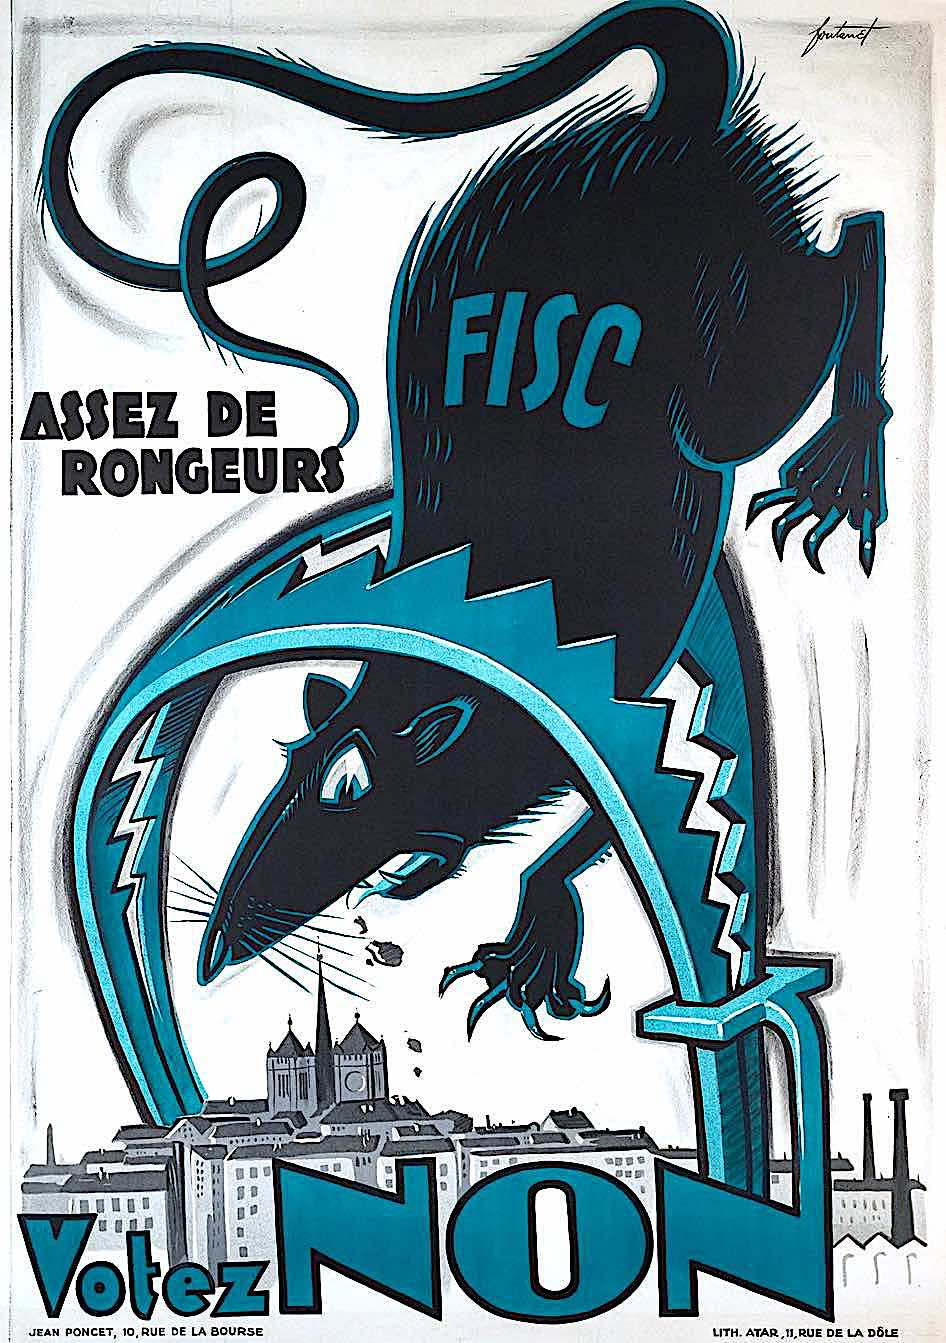 Noel Fontanet, a Swiss poster, Enough tax rodents, showing a rat in a trap